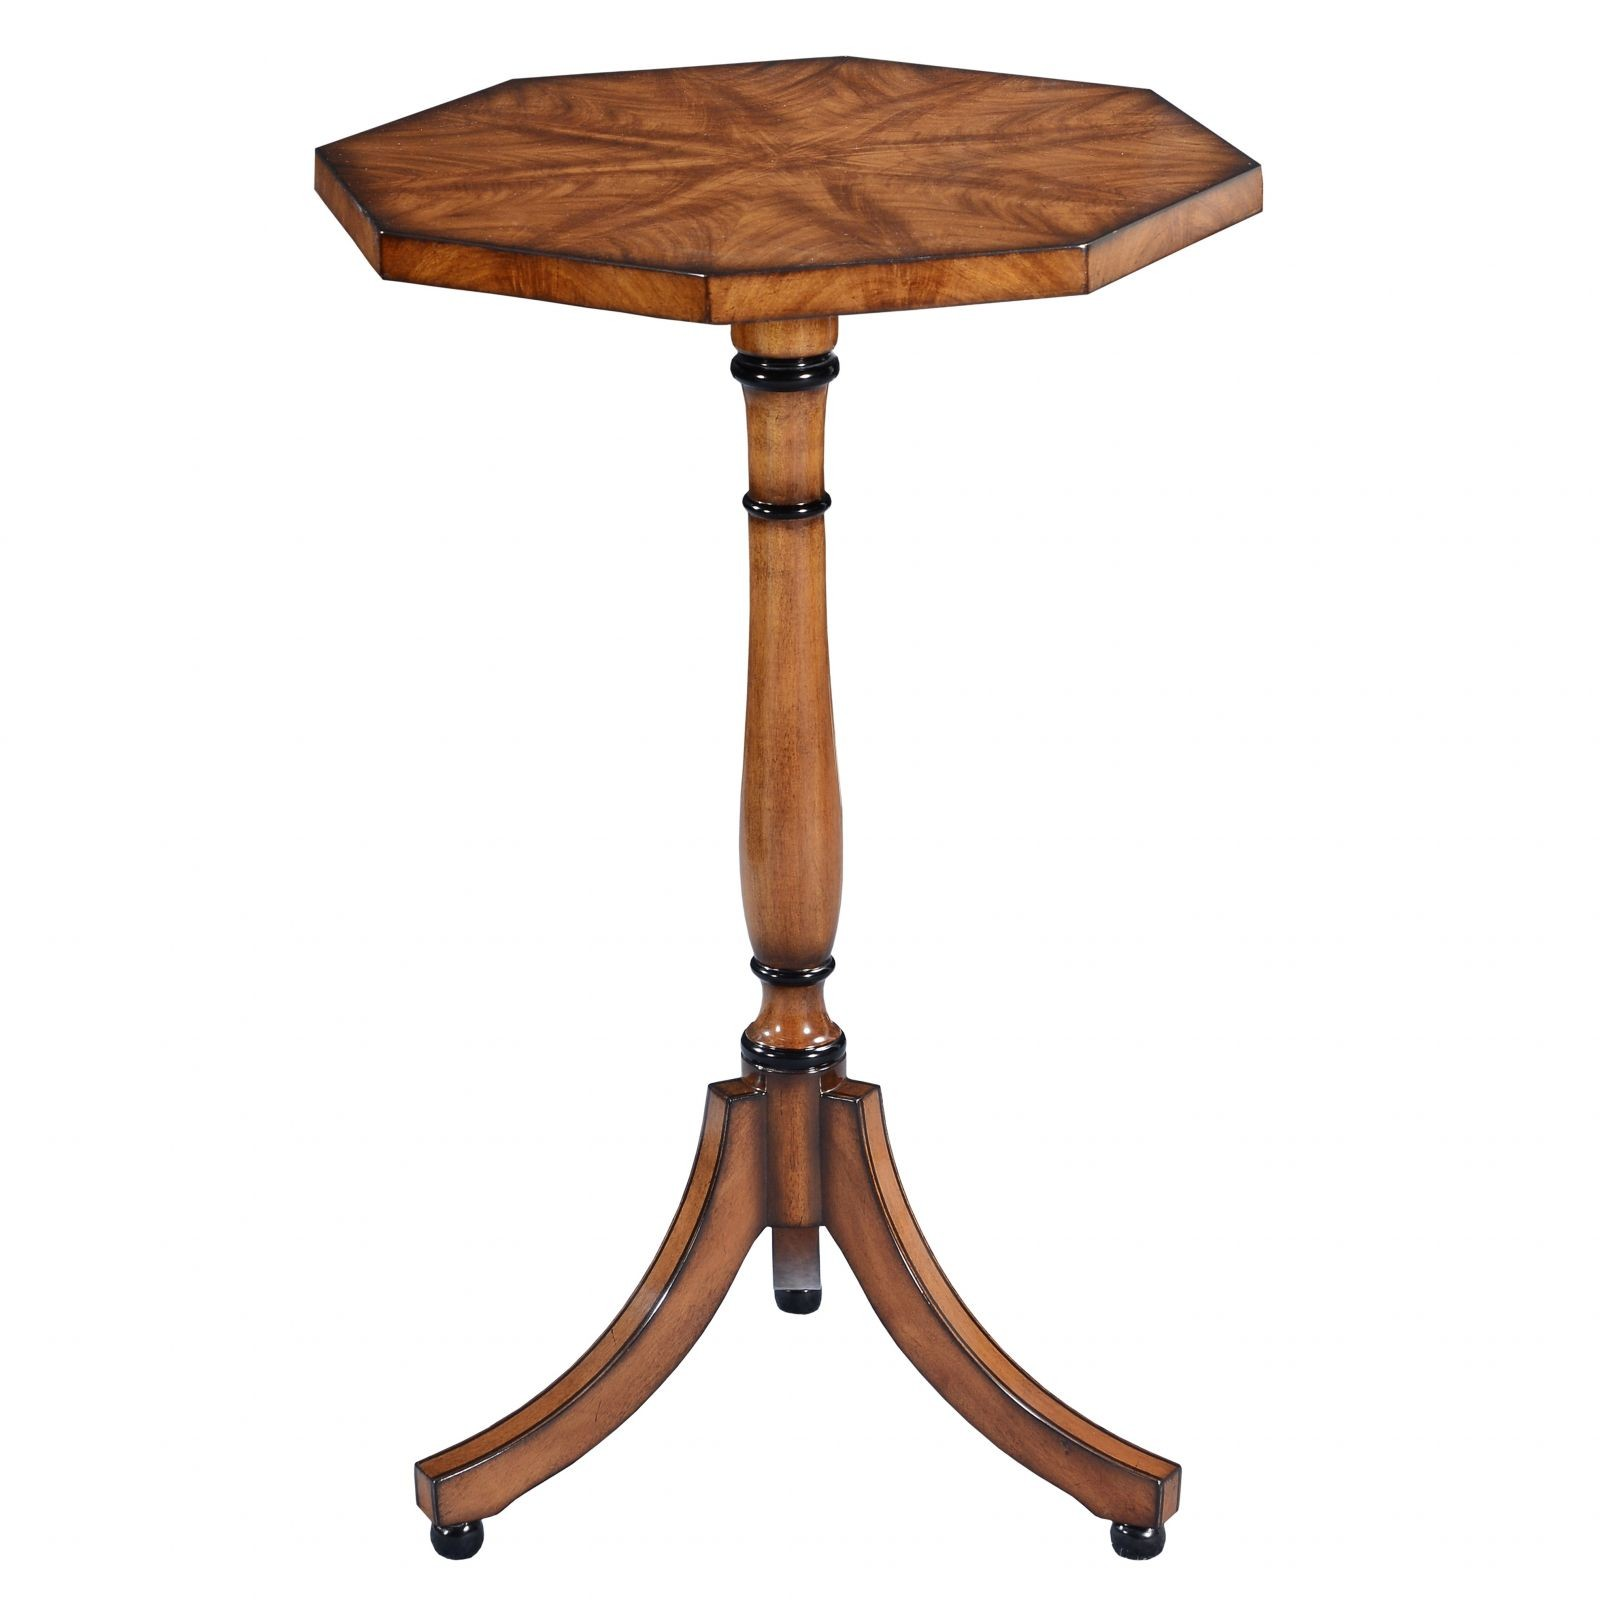 Octagonal wine table - Mahogany